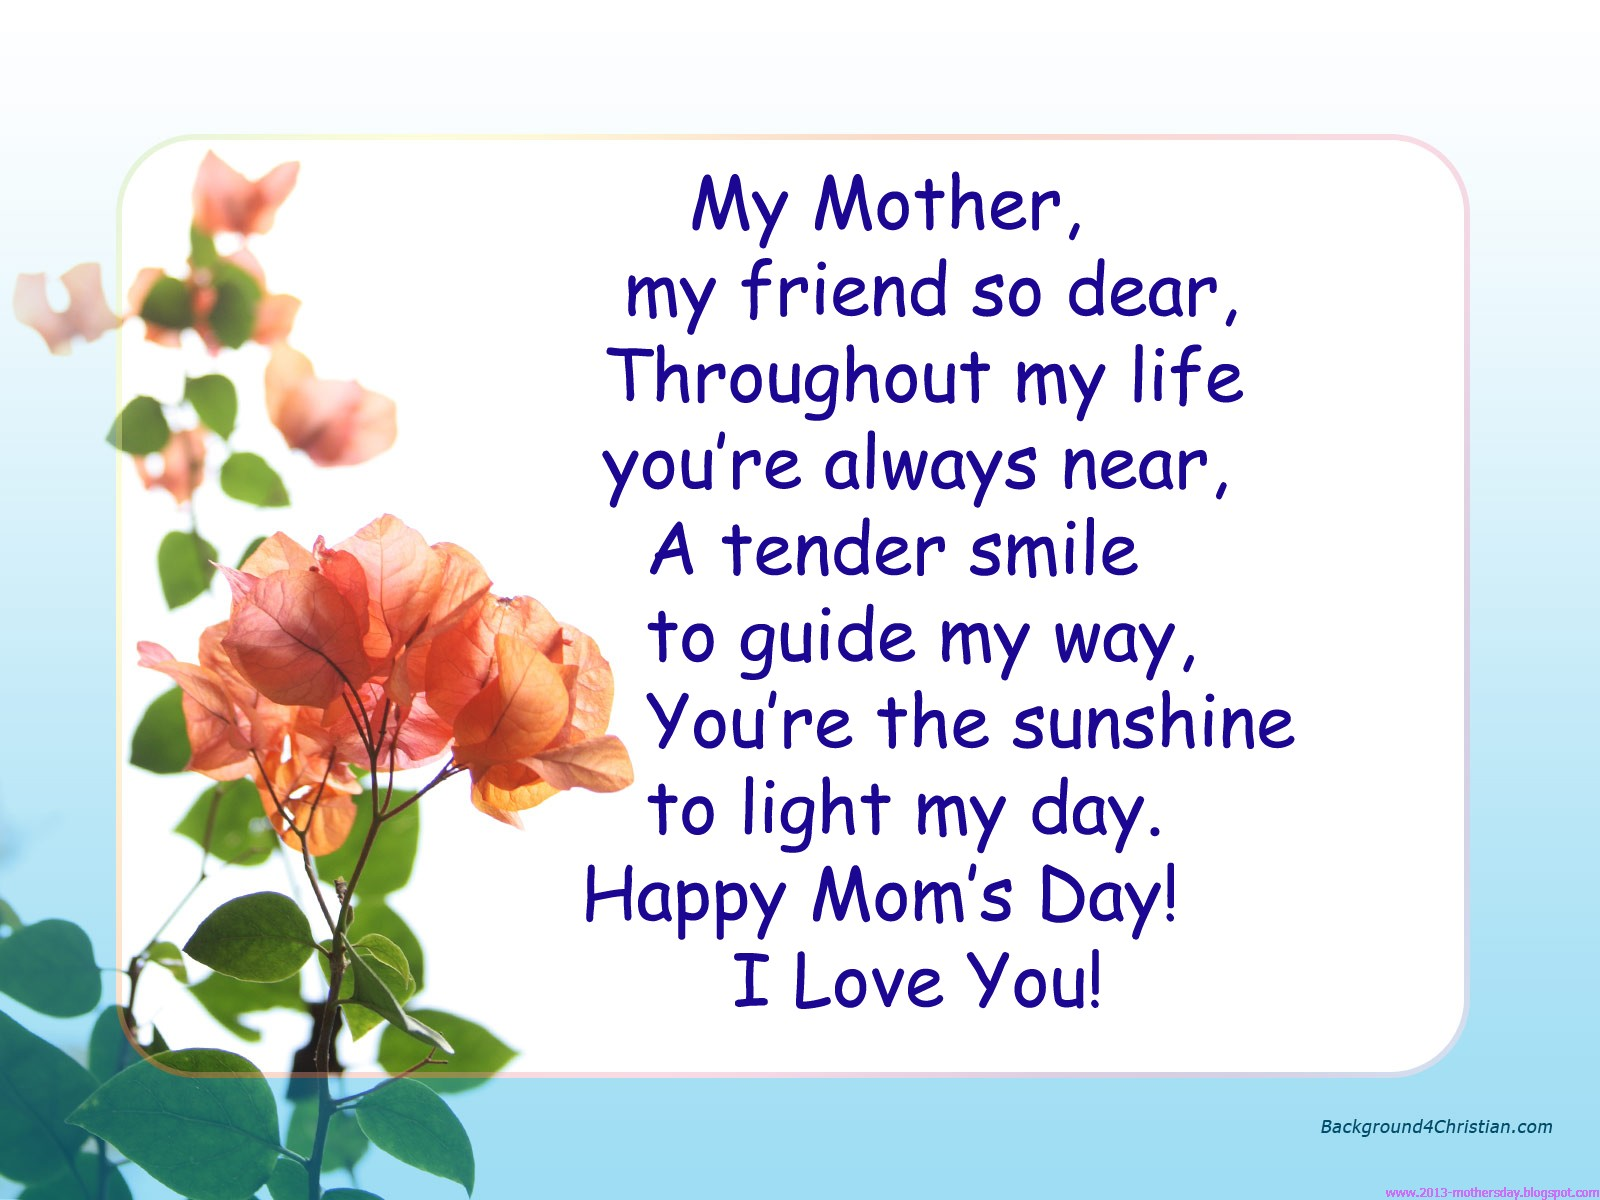 Happy-Mothers-Day-wishes-quotes-2013